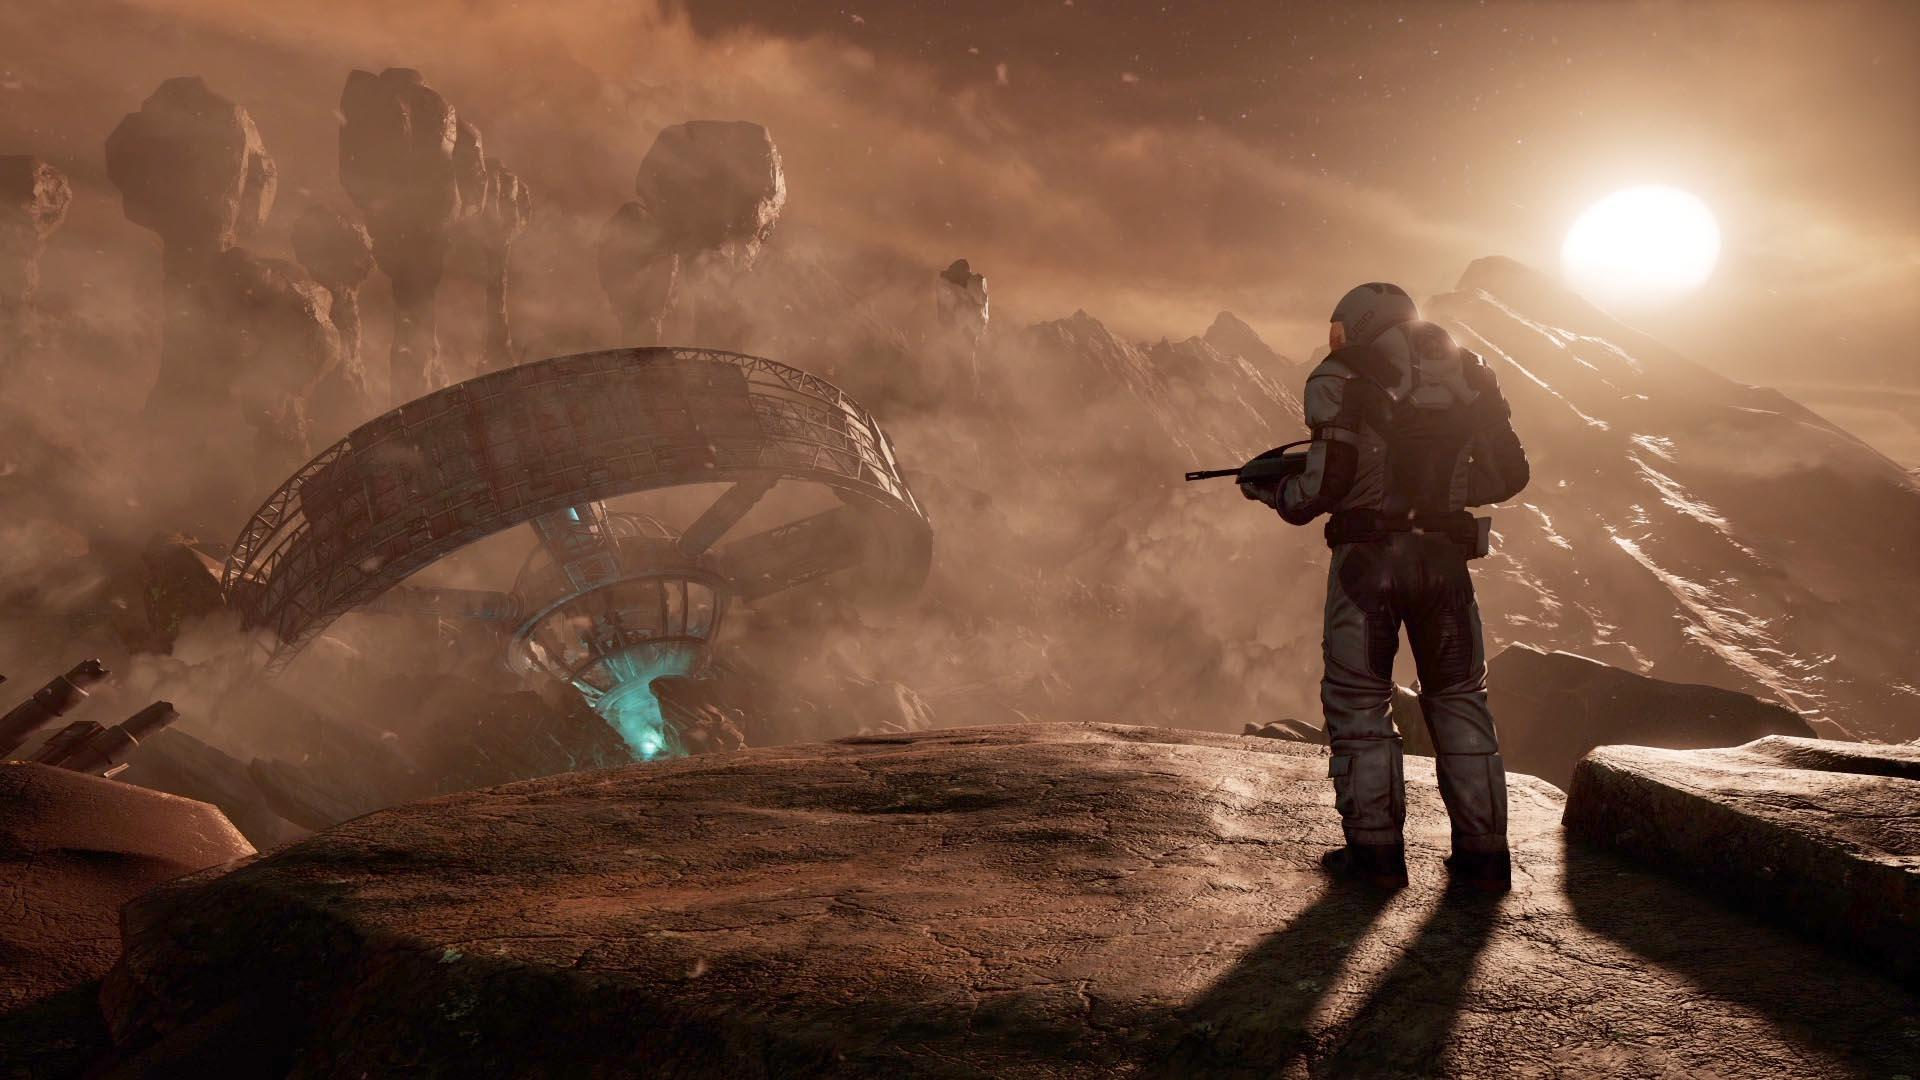 Farpoint review: A mediocre PSVR game, but the Aim